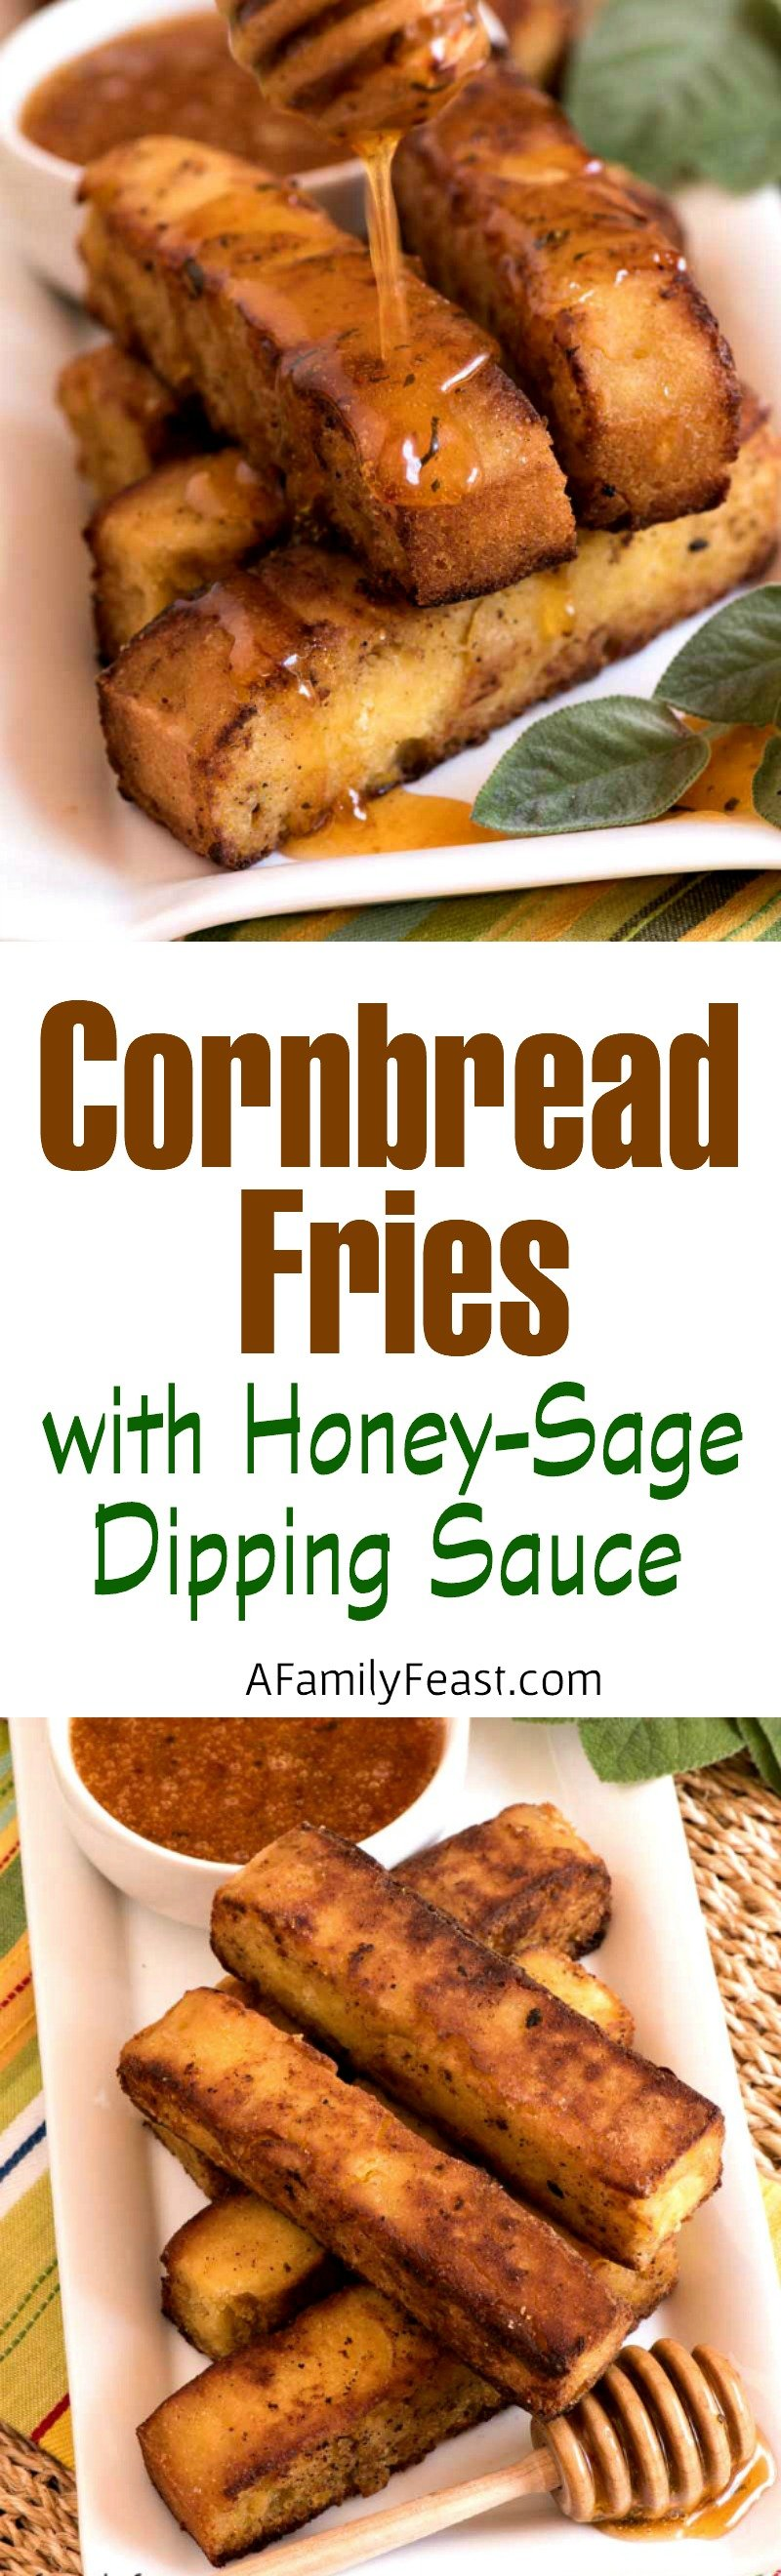 These Cornbread Fries with Honey-Sage Dipping Sauce are an addictively delicious snack!